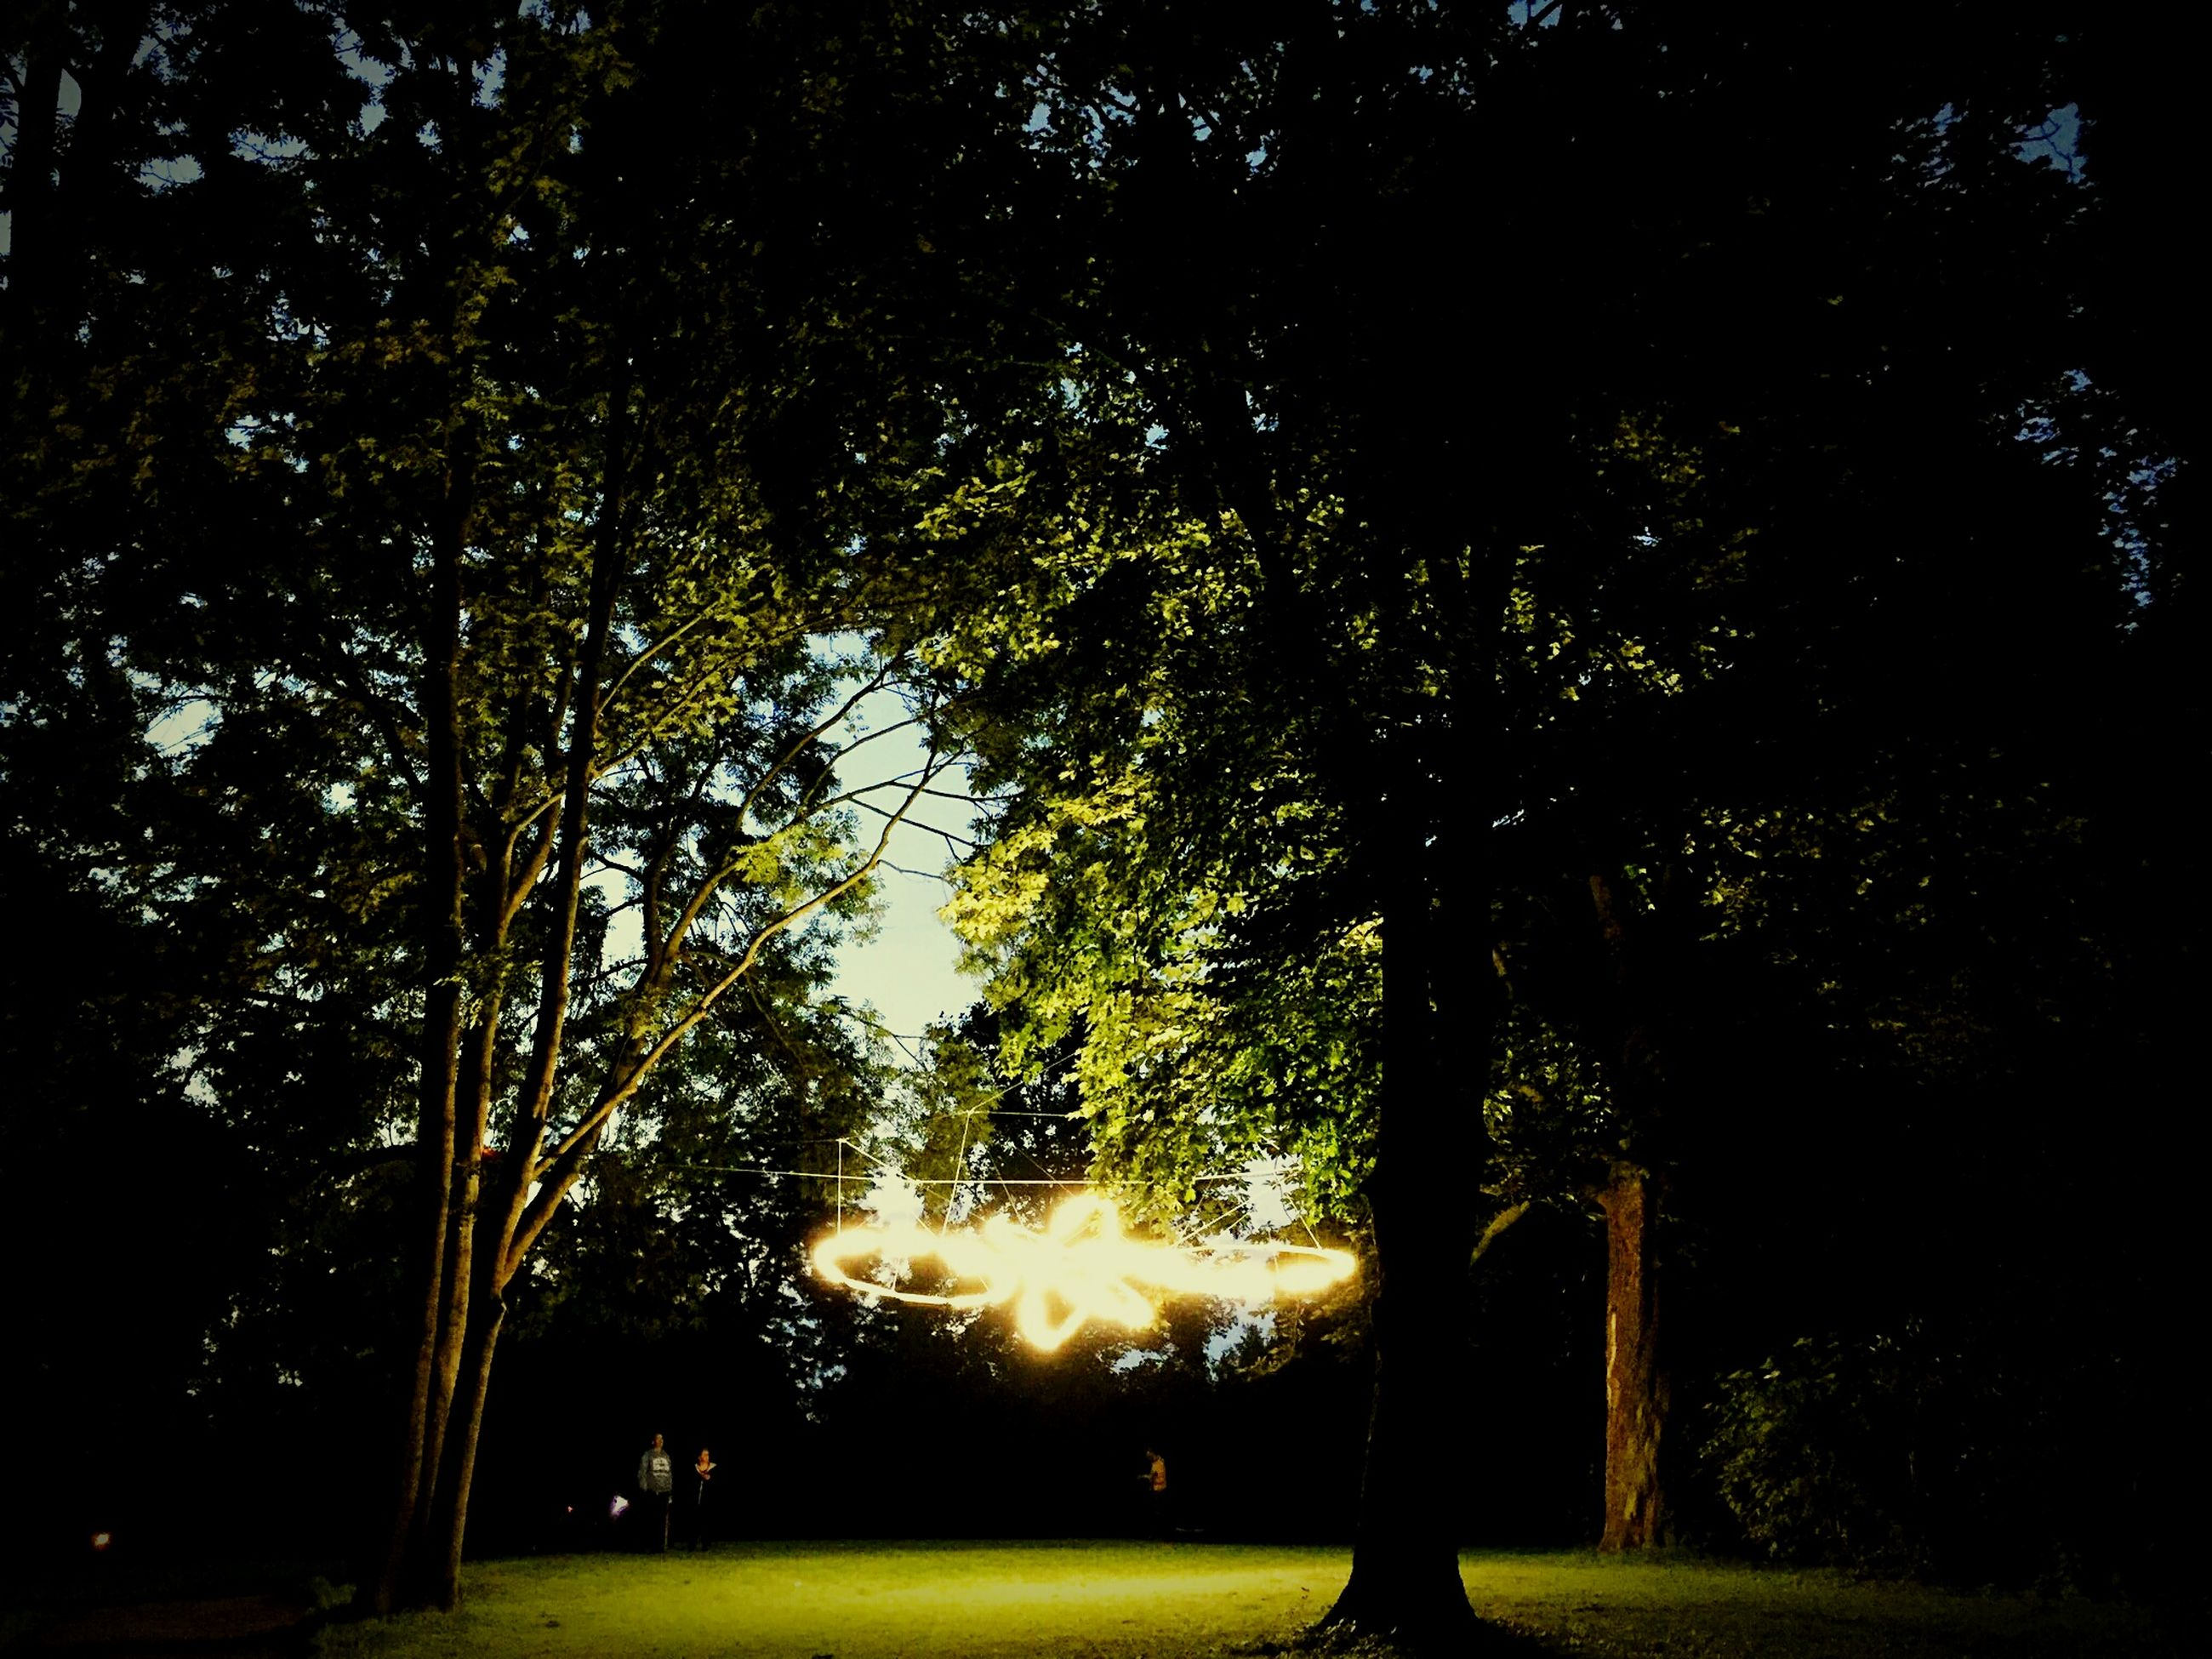 tree, grass, tranquility, park - man made space, street light, growth, silhouette, nature, sunlight, night, illuminated, green color, sky, tranquil scene, field, beauty in nature, branch, outdoors, scenics, tree trunk